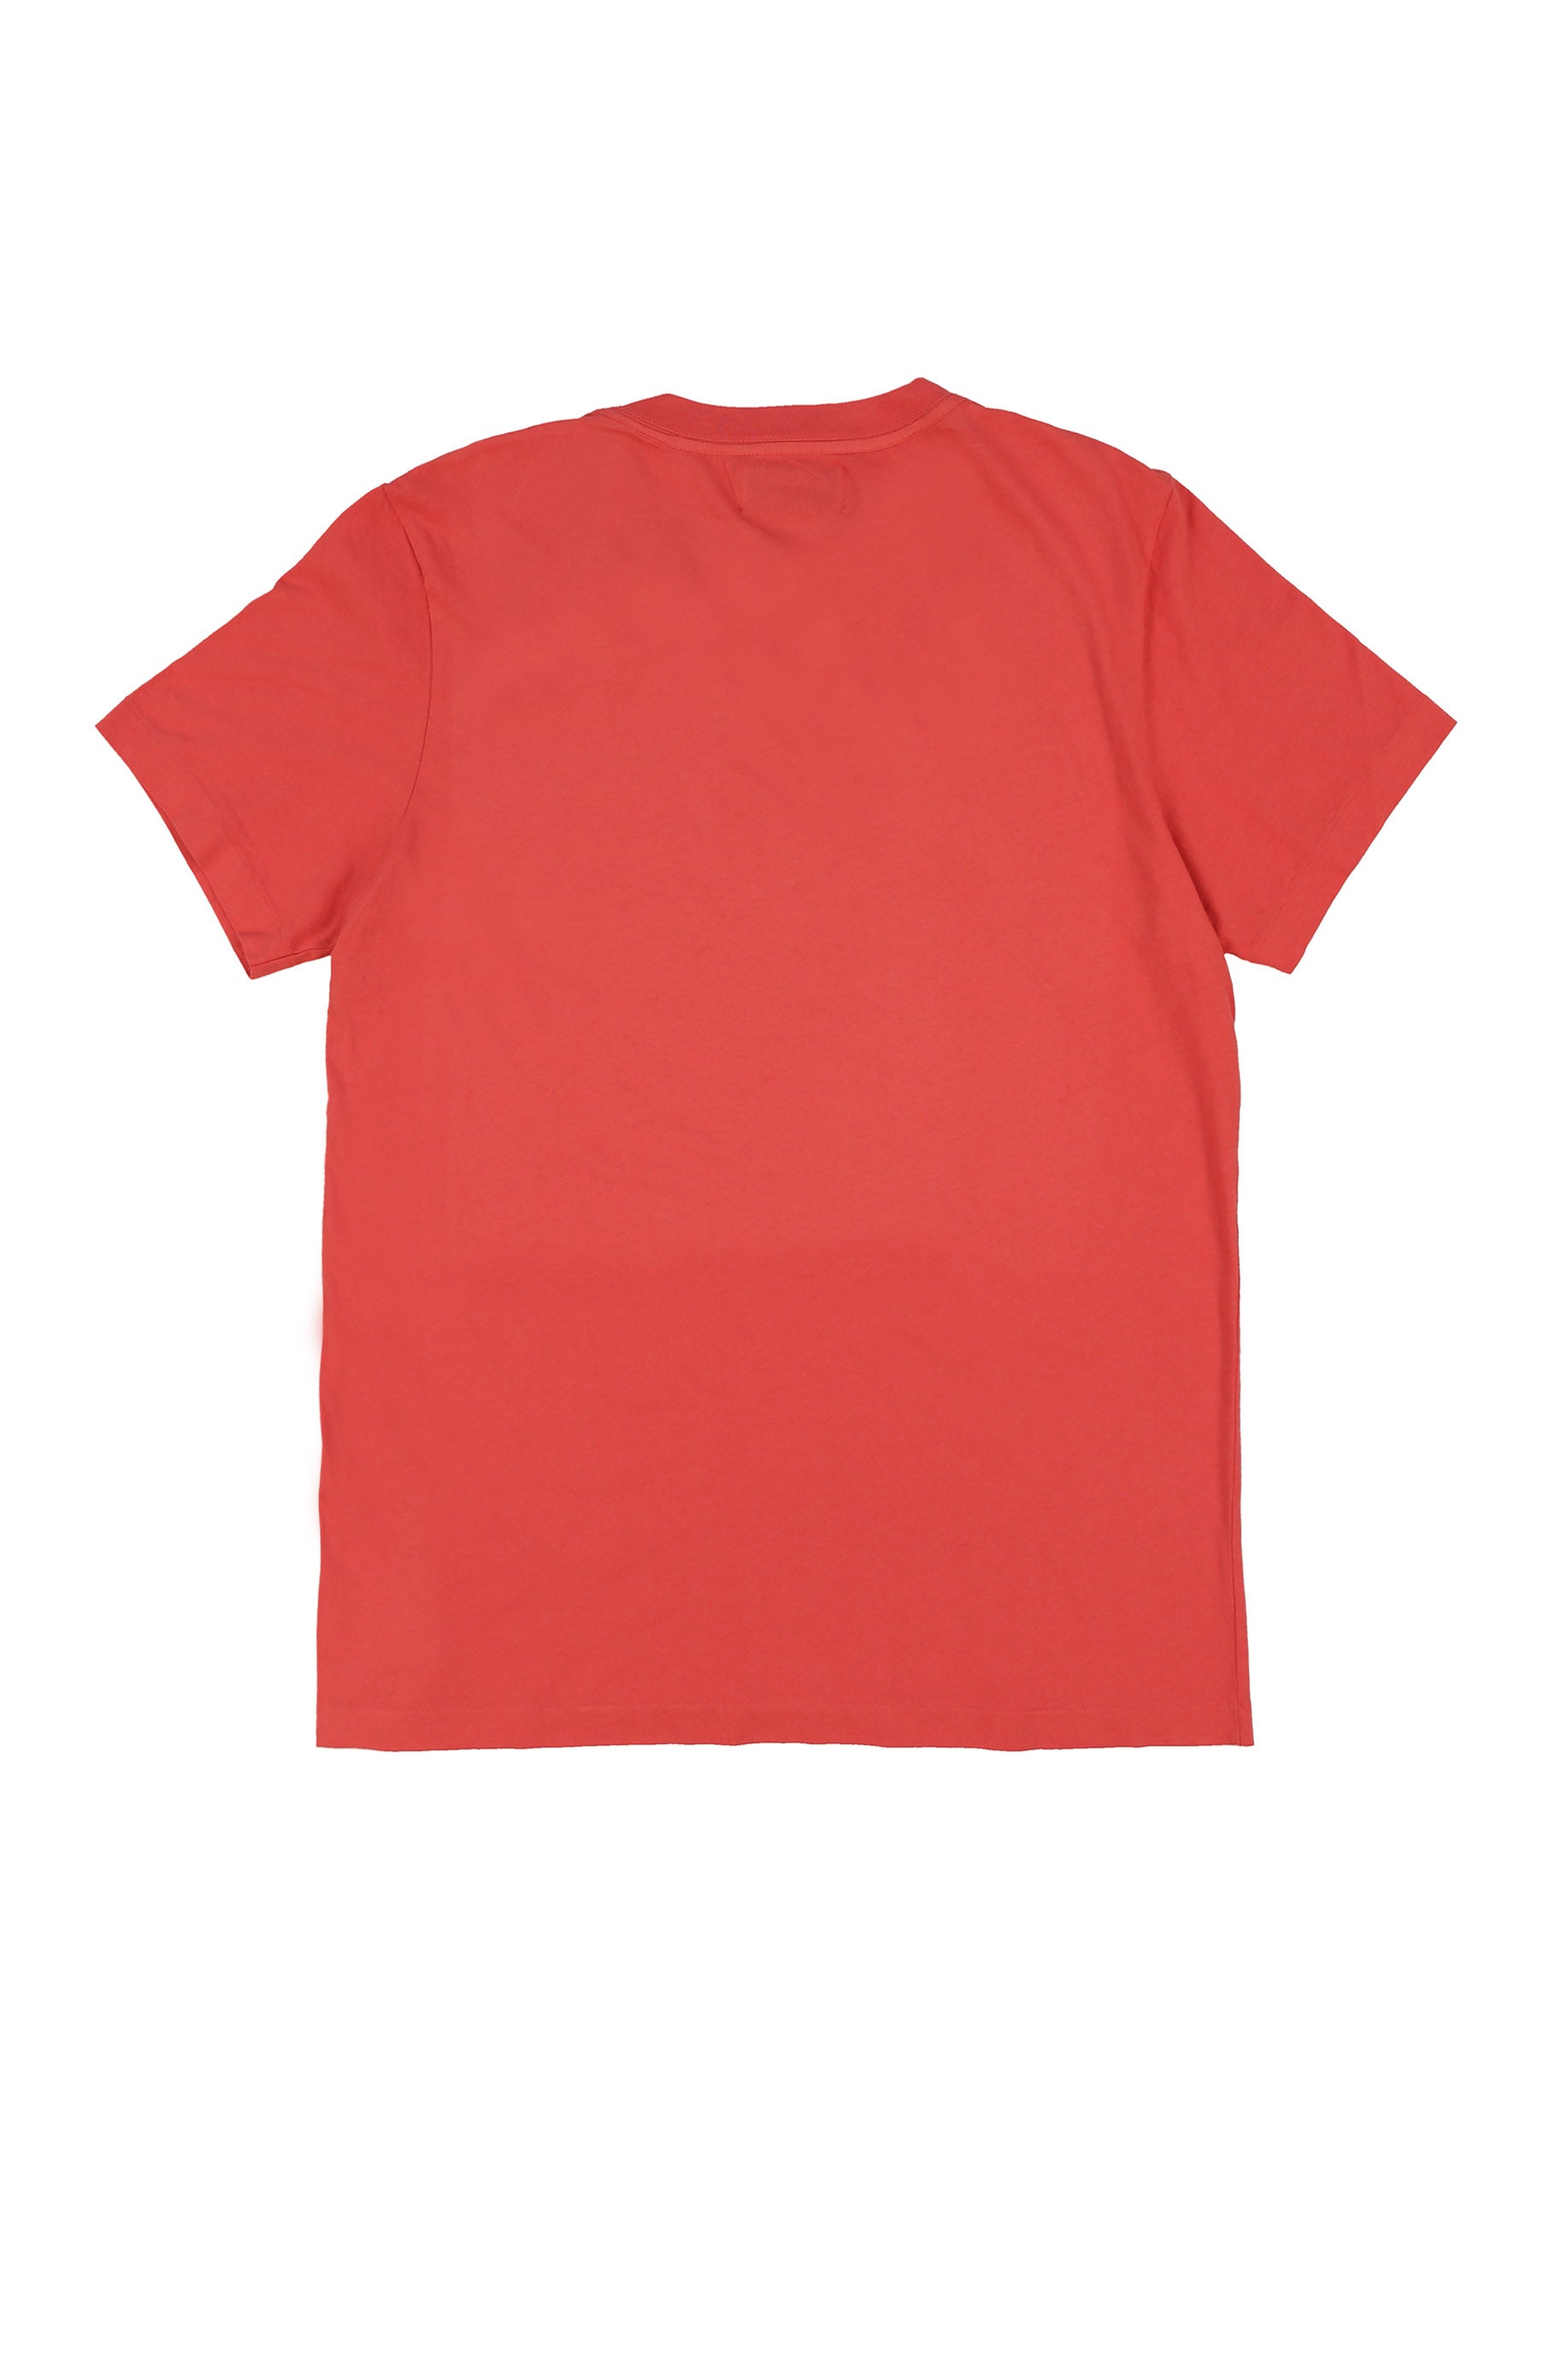 MONACO BOARDING PASS TEE (WATERMELON)